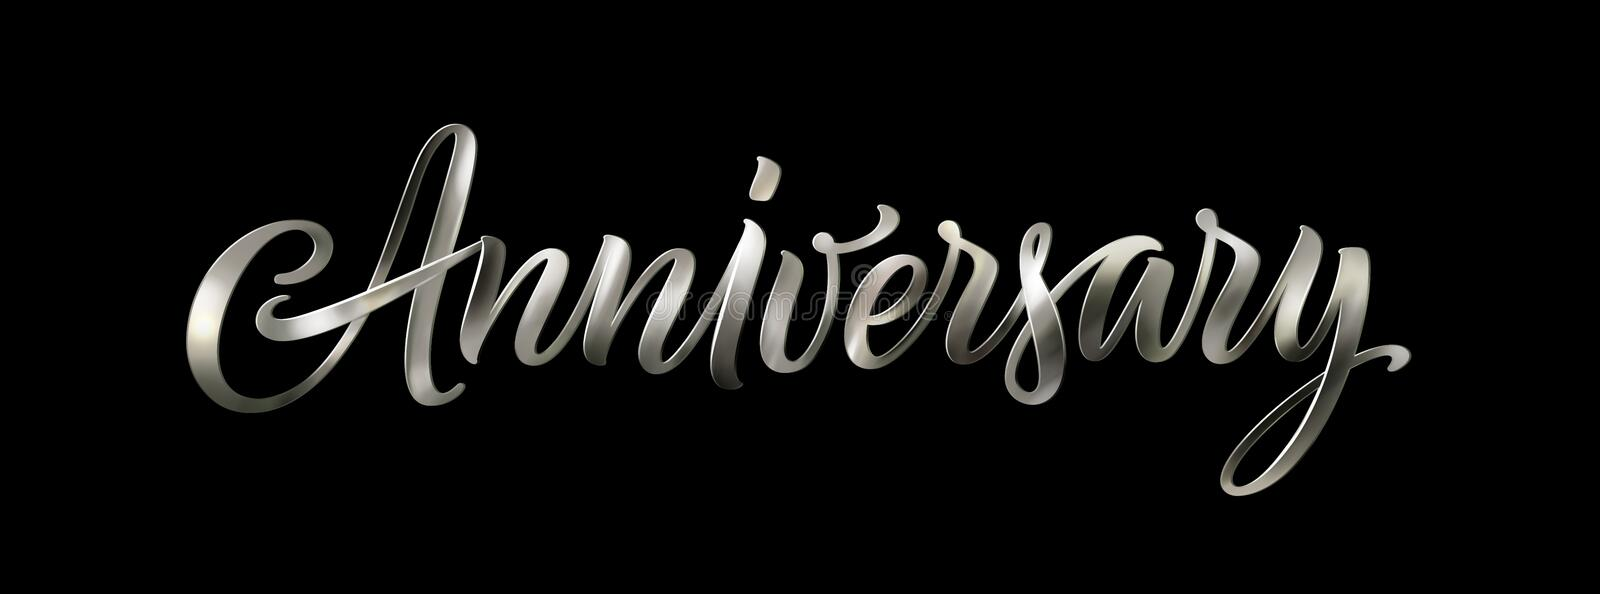 Silver anniversary text isolated on black background. Vector elegant 3D lettering. Vintage calligraphy word for a happy royalty free illustration